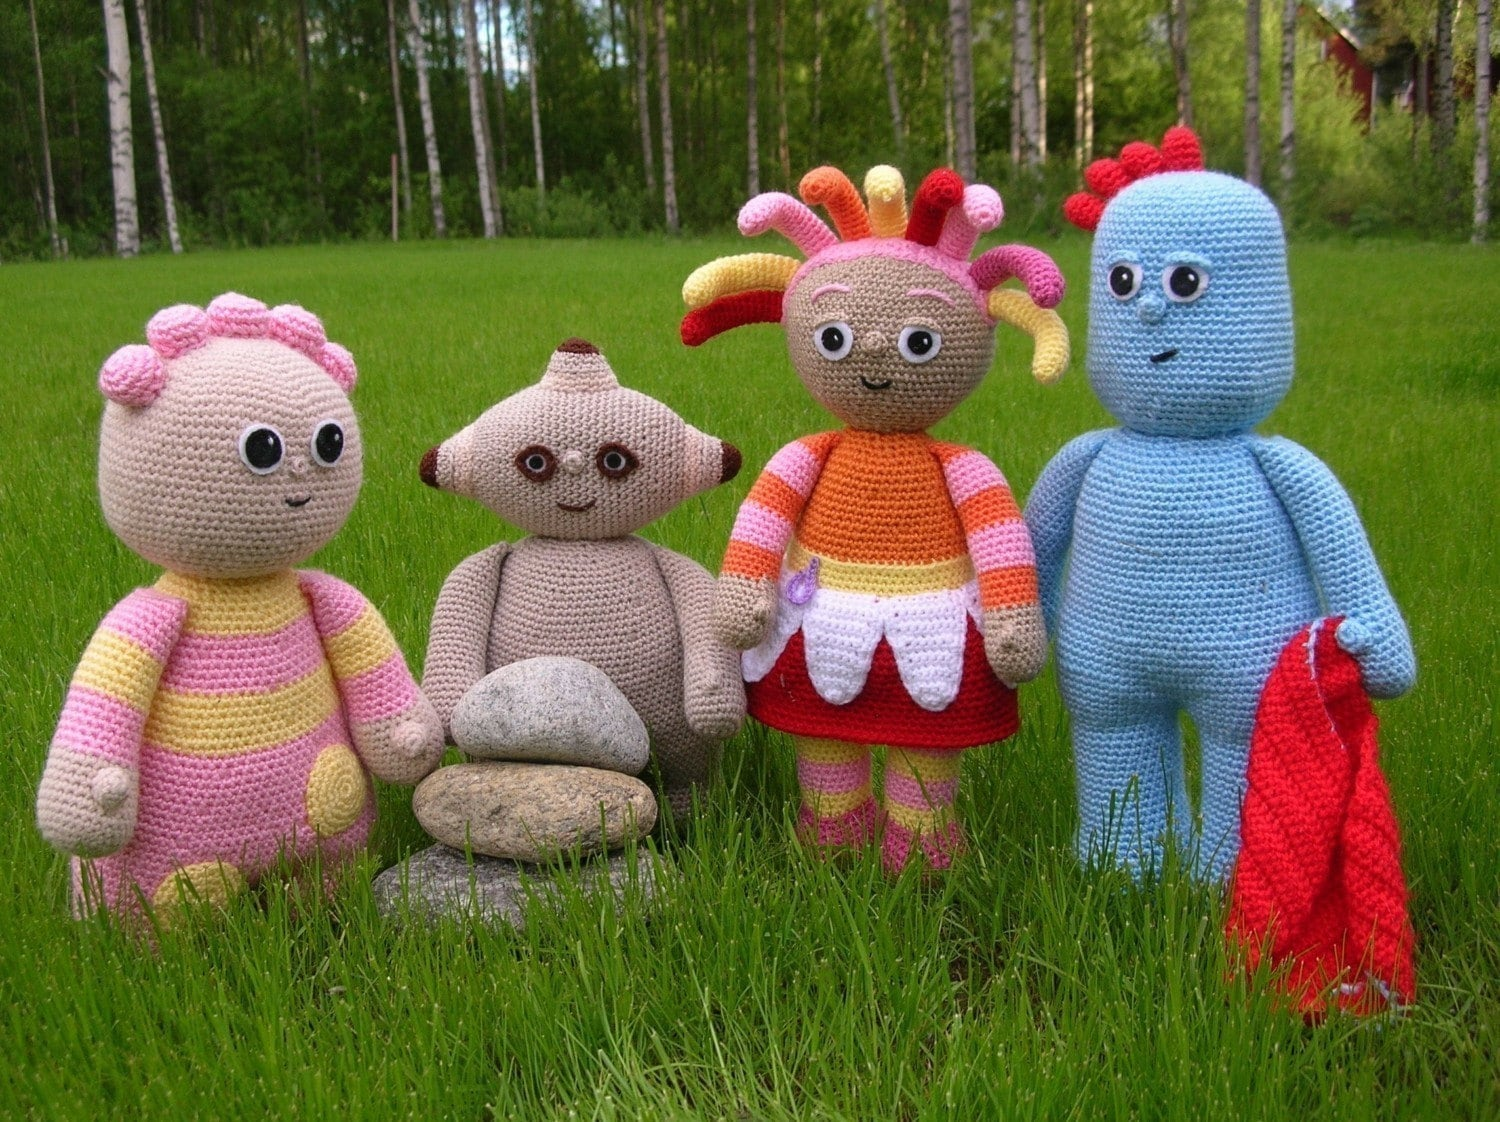 Knitting Pattern Iggle Piggle : Iggle Piggle Love - The Knit Wit by Shair